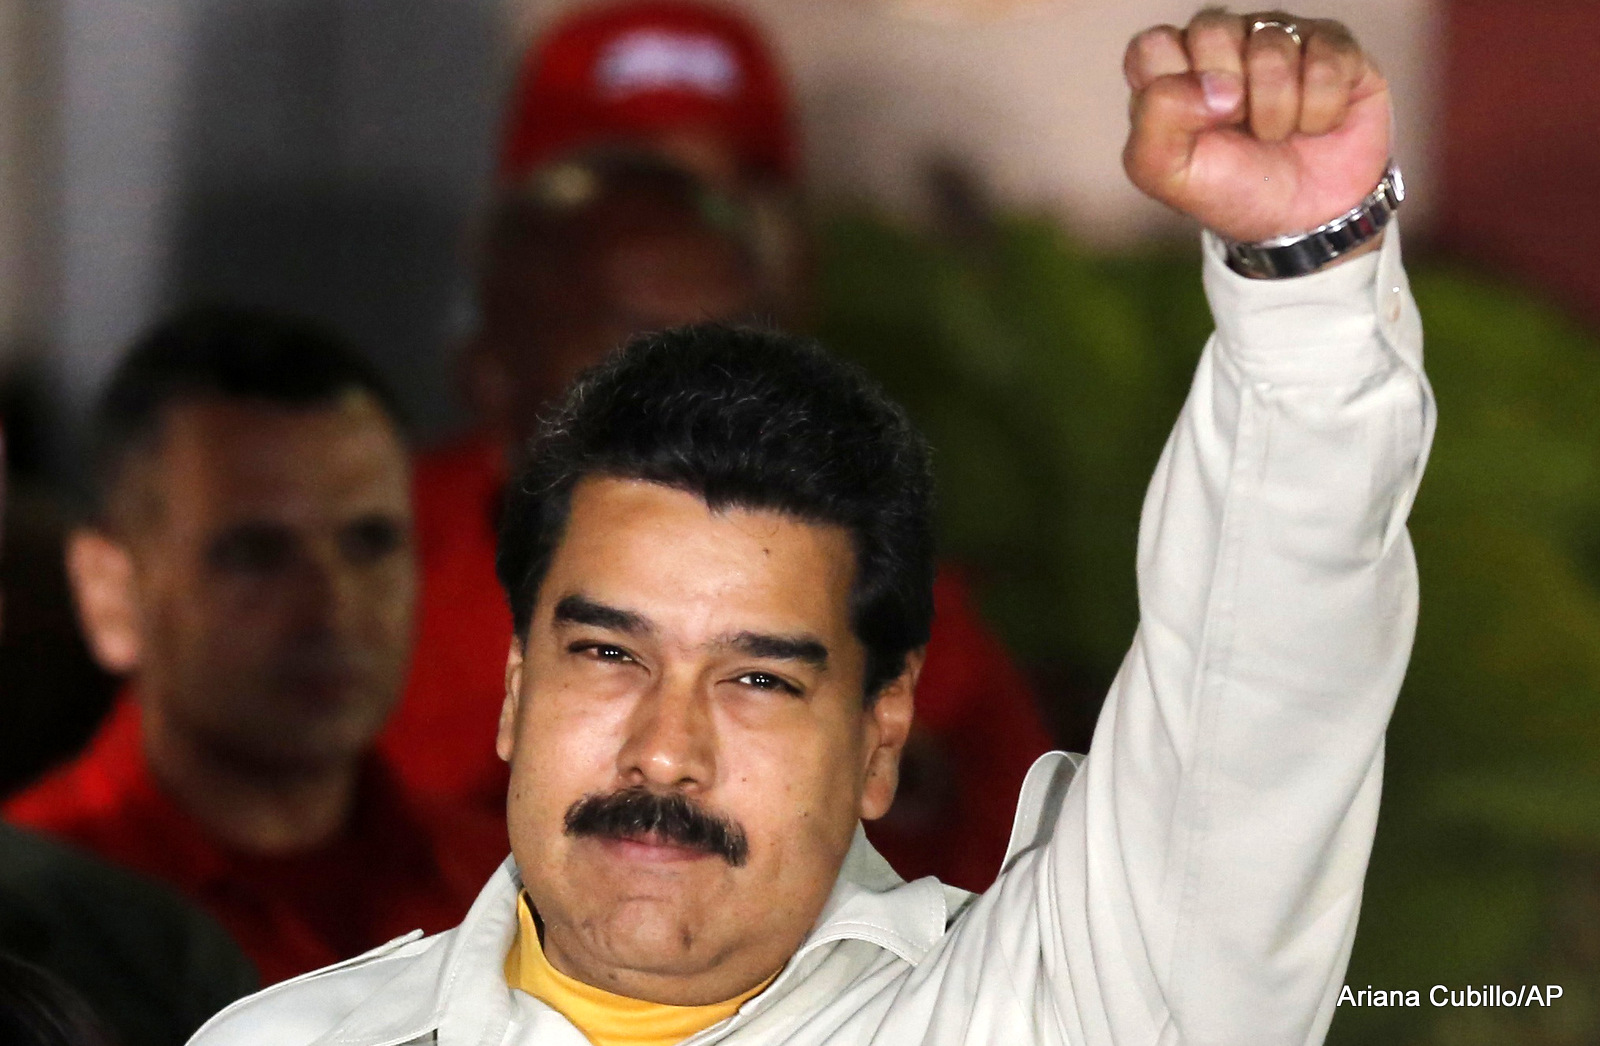 Venezuela's President Nicolas Maduro holds up a clenched fist as he greets supporters during an event at Miraflores presidential palace in Caracas, Venezuela. In a fiery speech late Monday, March 9, 2015.